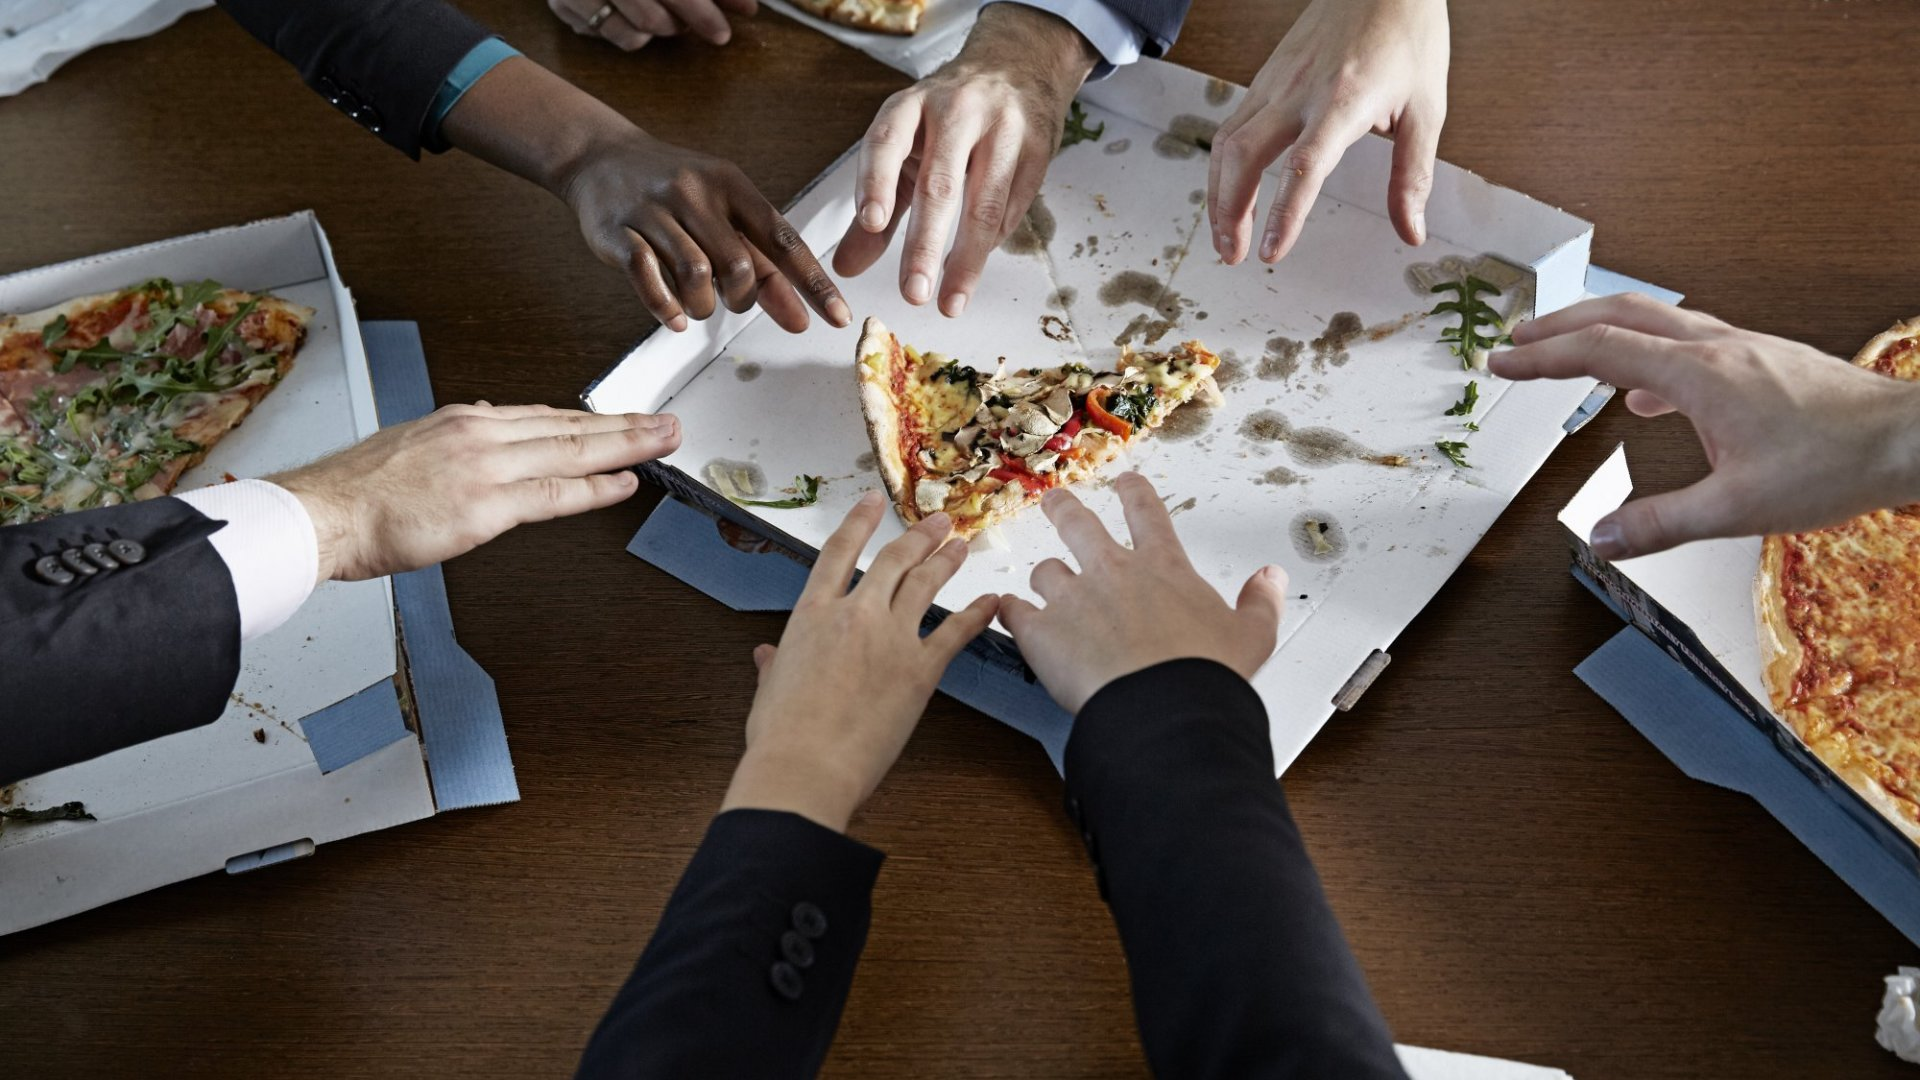 Making Dough: How This Pizza Entrepreneur Busted Free From the 'Growth Trap'